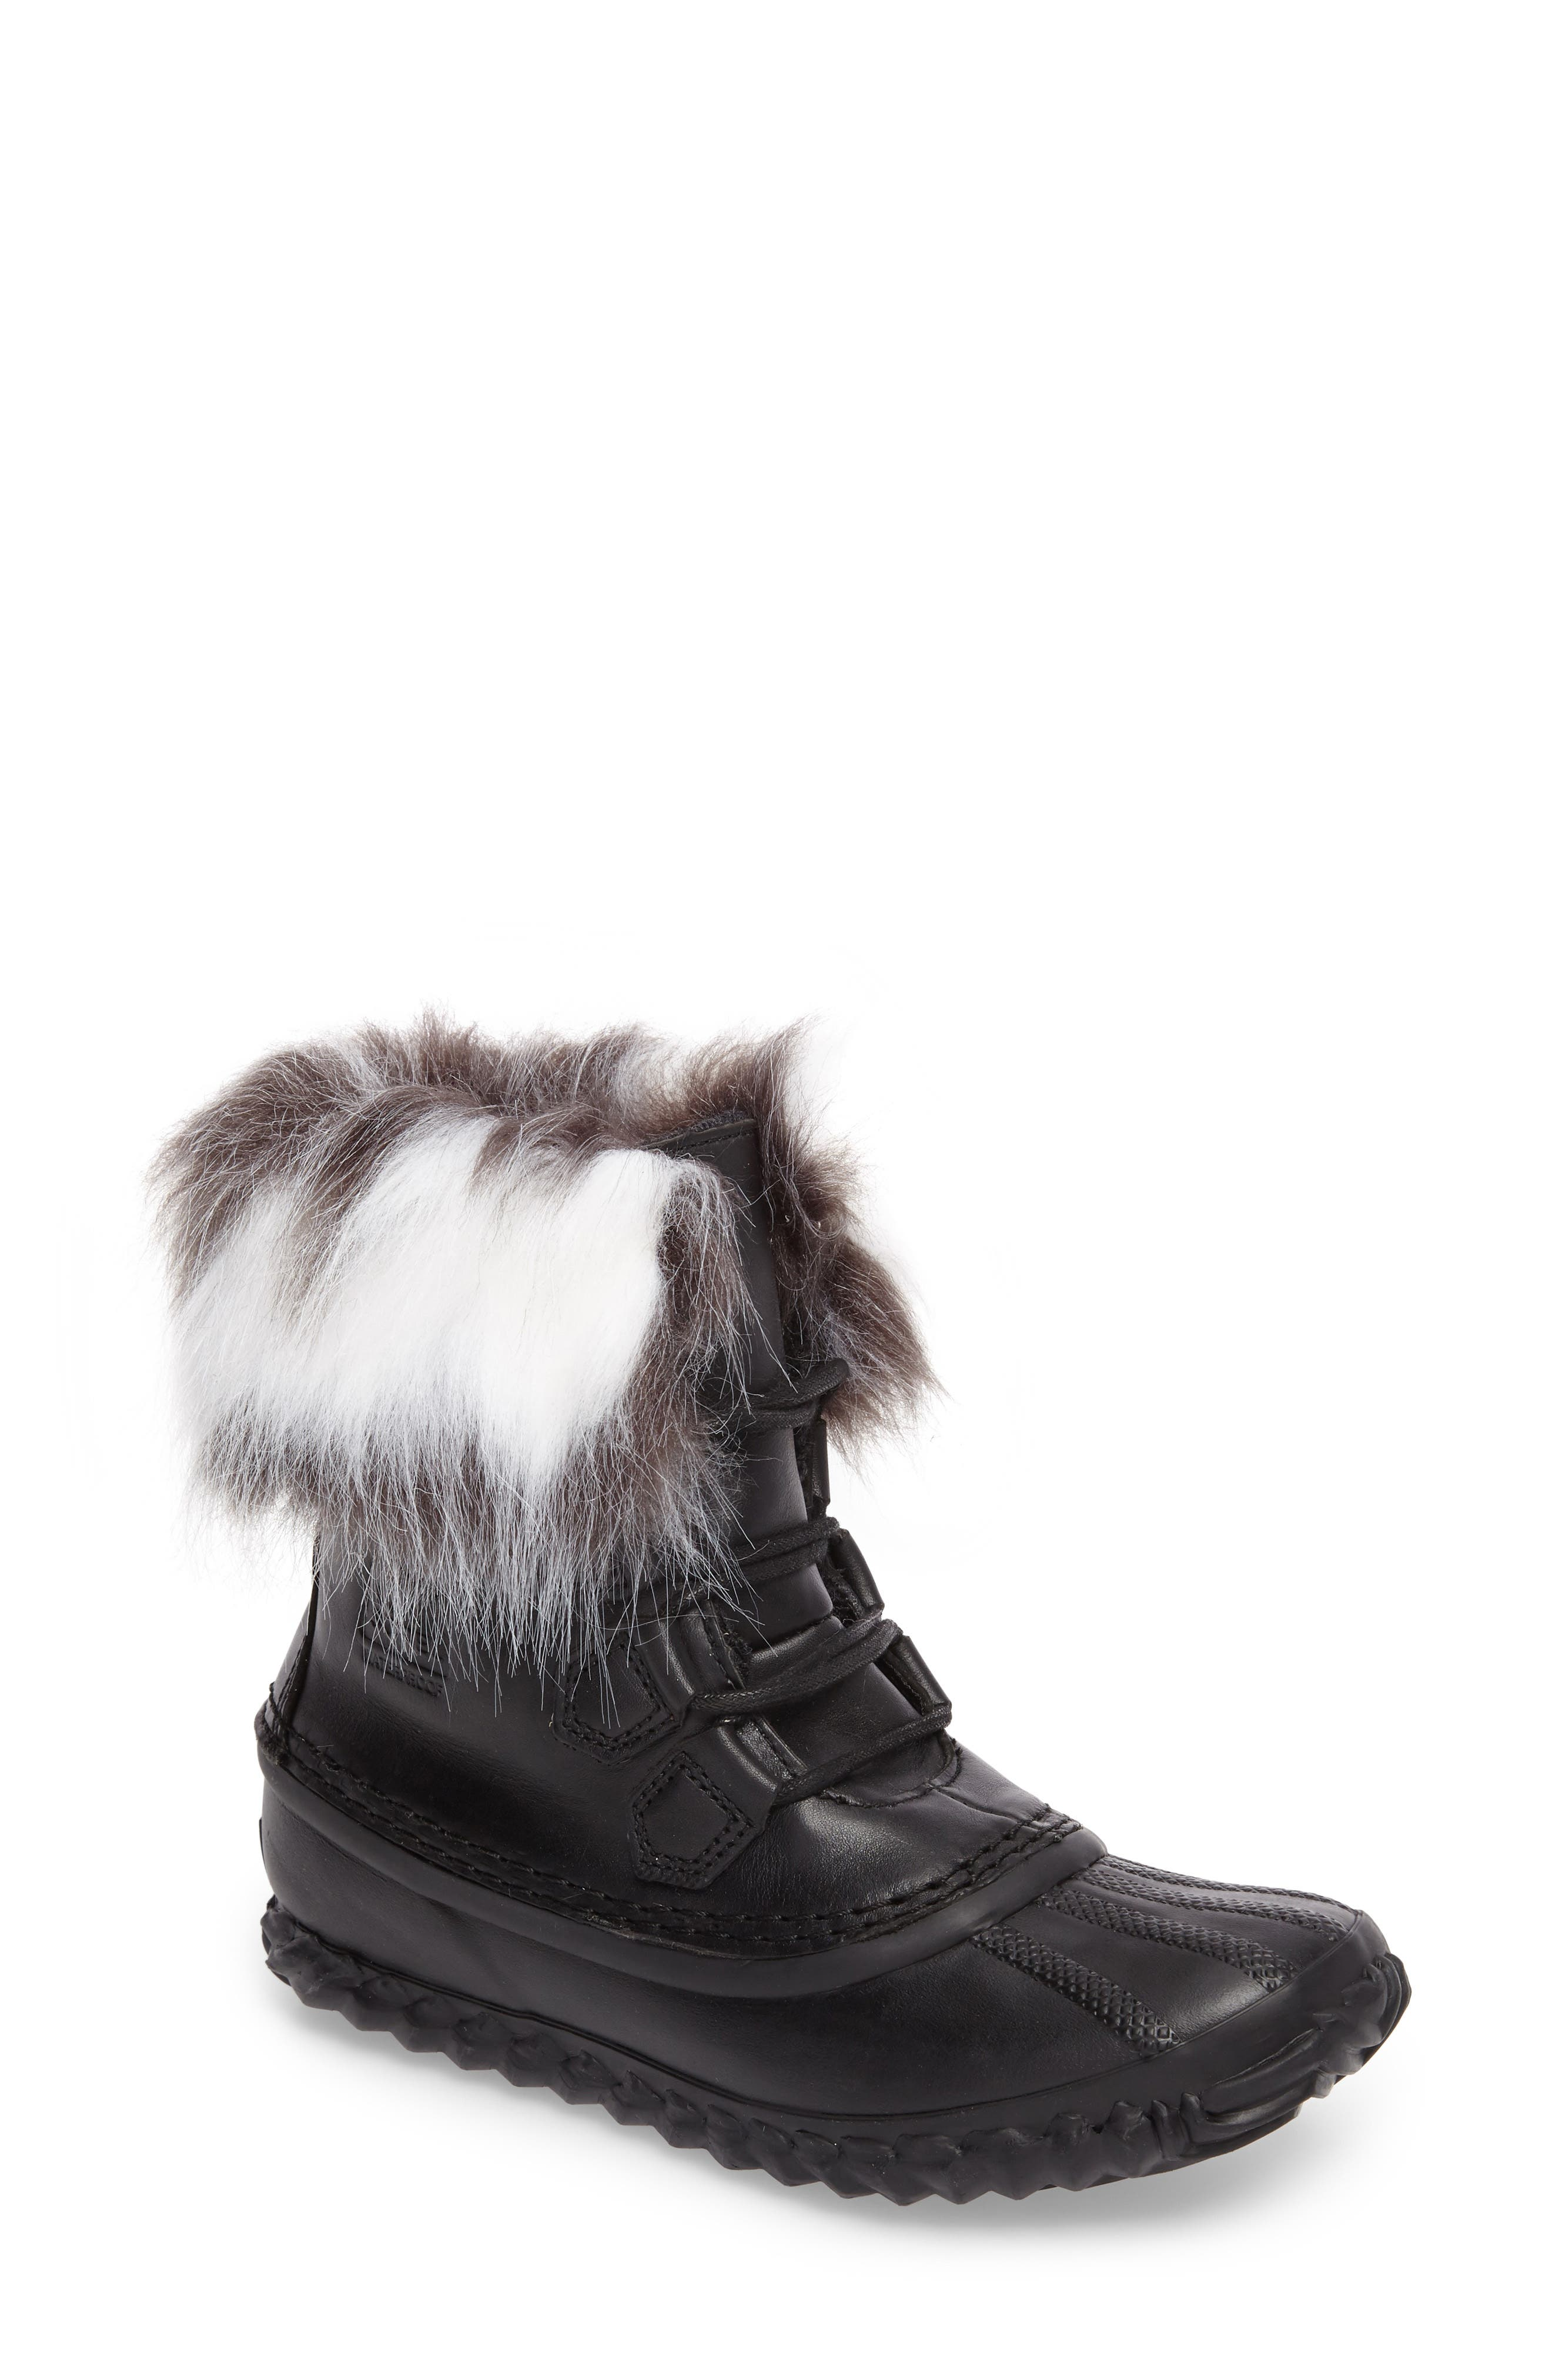 Out 'N About Waterproof Luxe Bootie,                         Main,                         color, Black/ Sea Salt